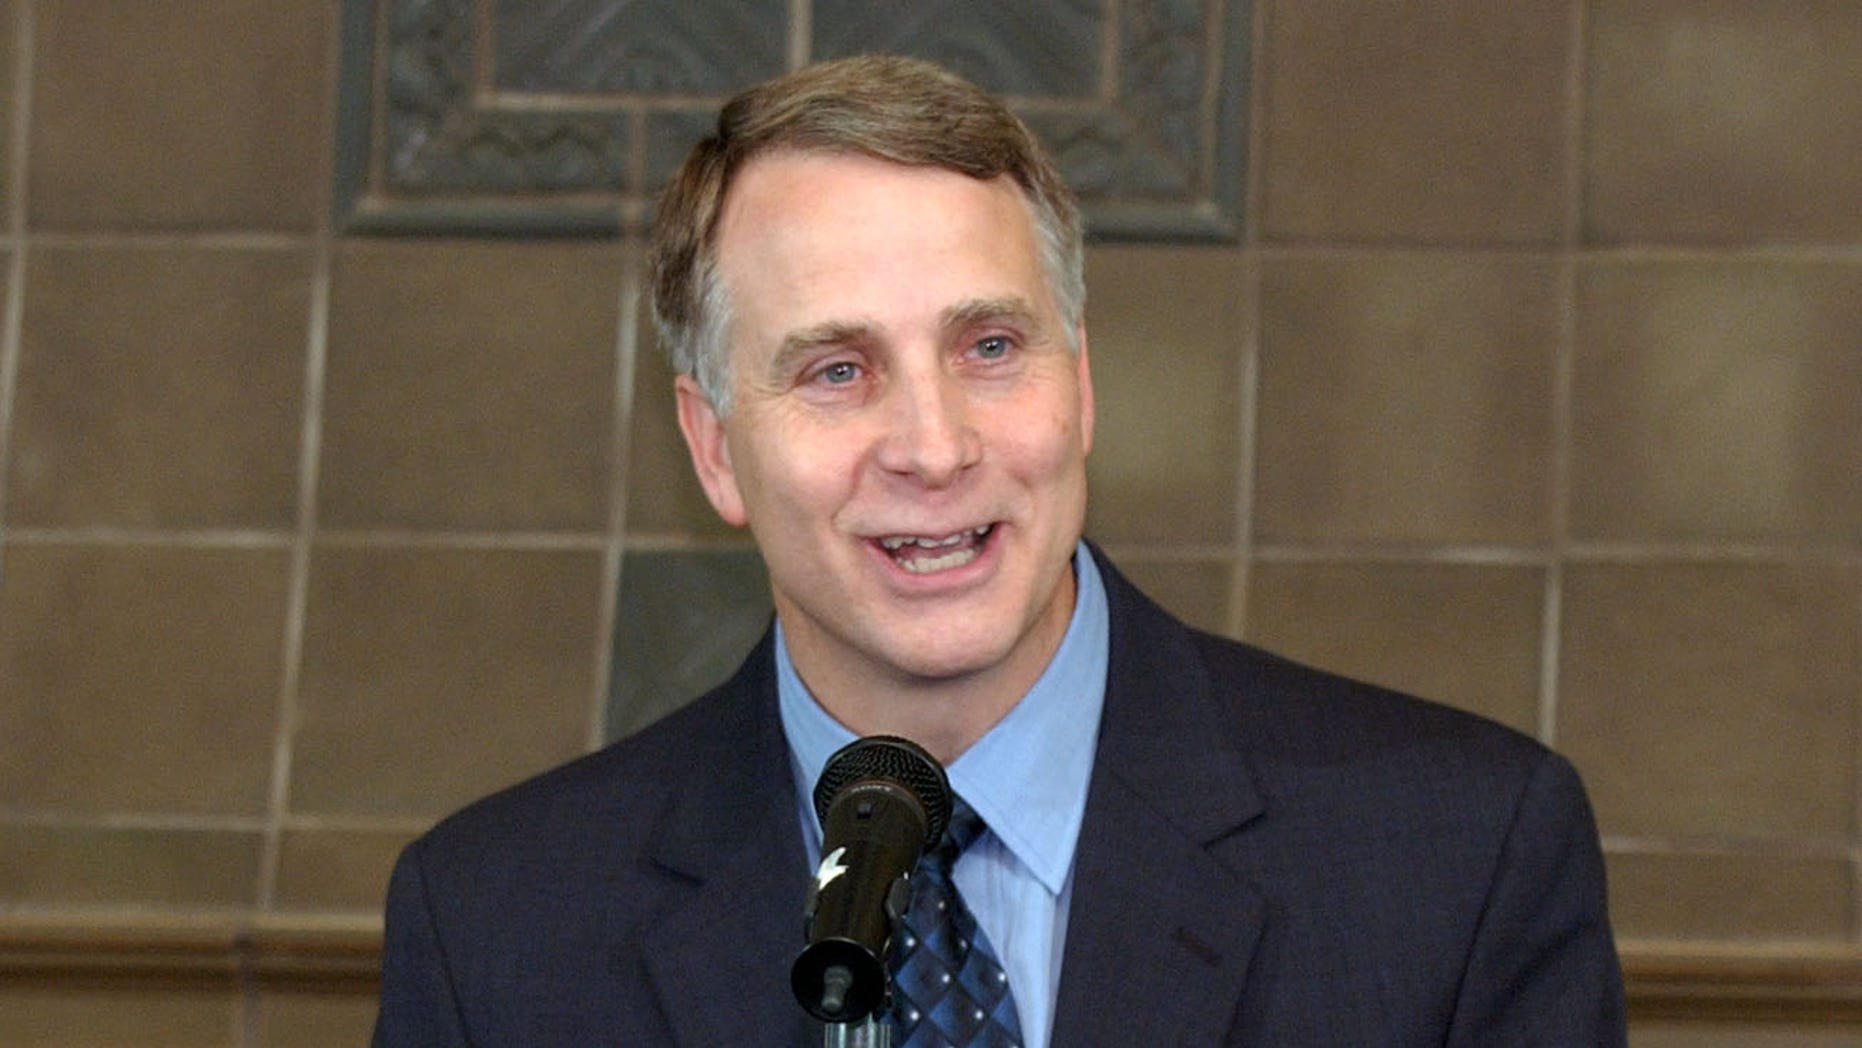 July 30, 2003: In this  file photo, Emory University president James W. Wagner speaks during a press conference at the Emory Conference Center Hotel in Atlanta, Ga.